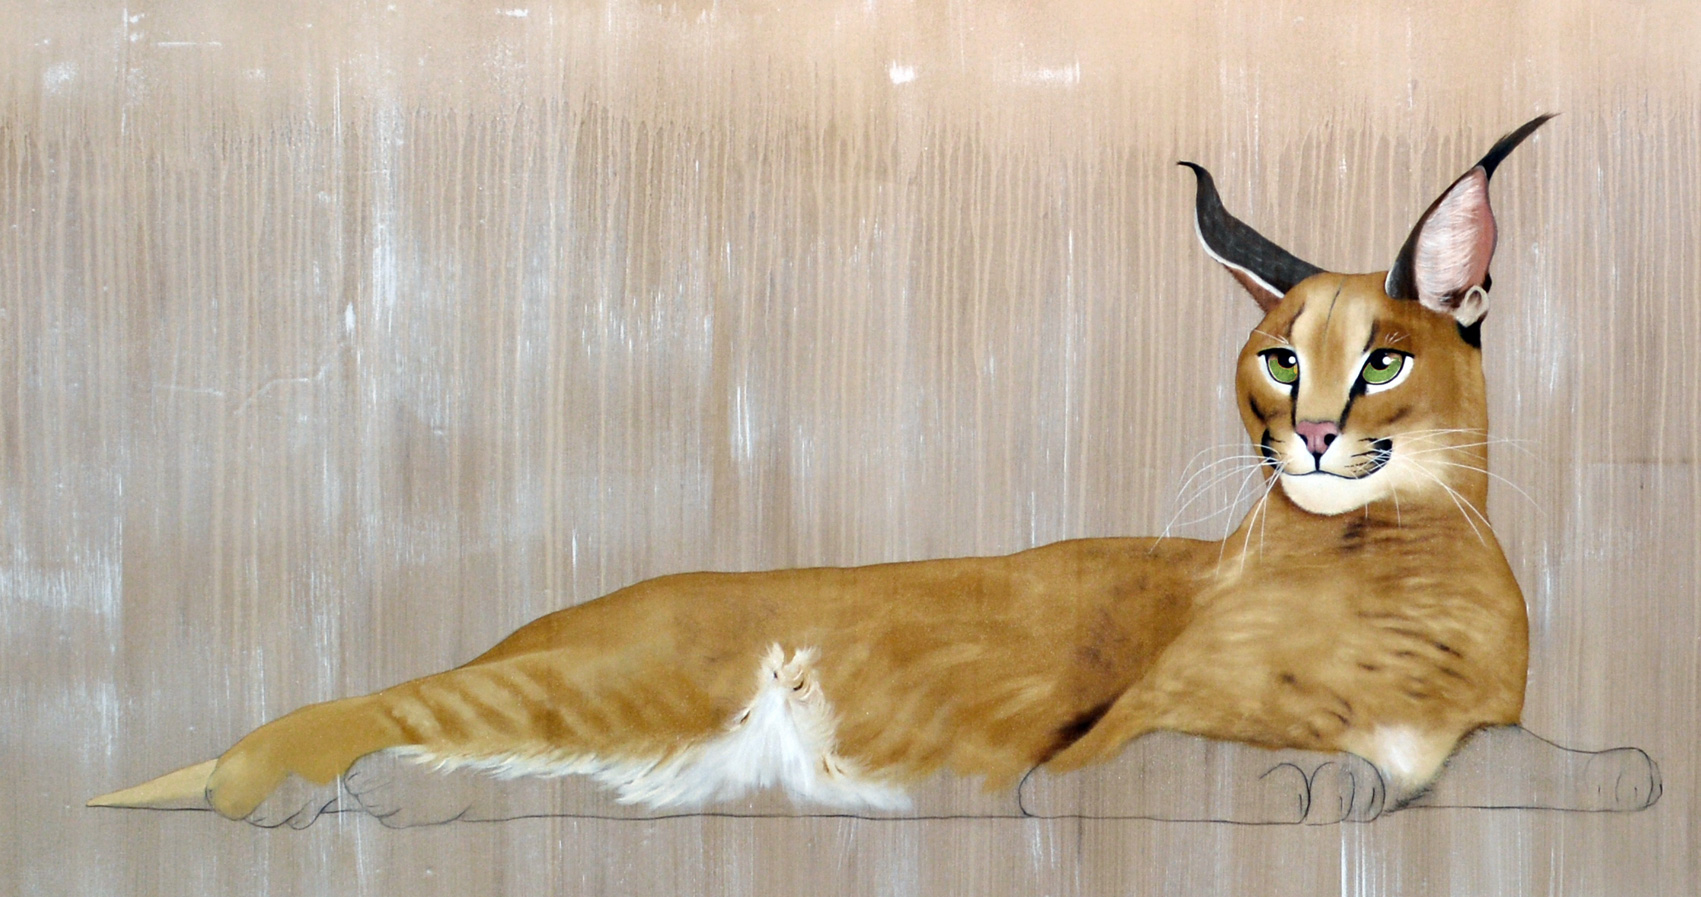 CARACAL divers Thierry Bisch painter animals painting art decoration hotel design interior luxury nature biodiversity conservation